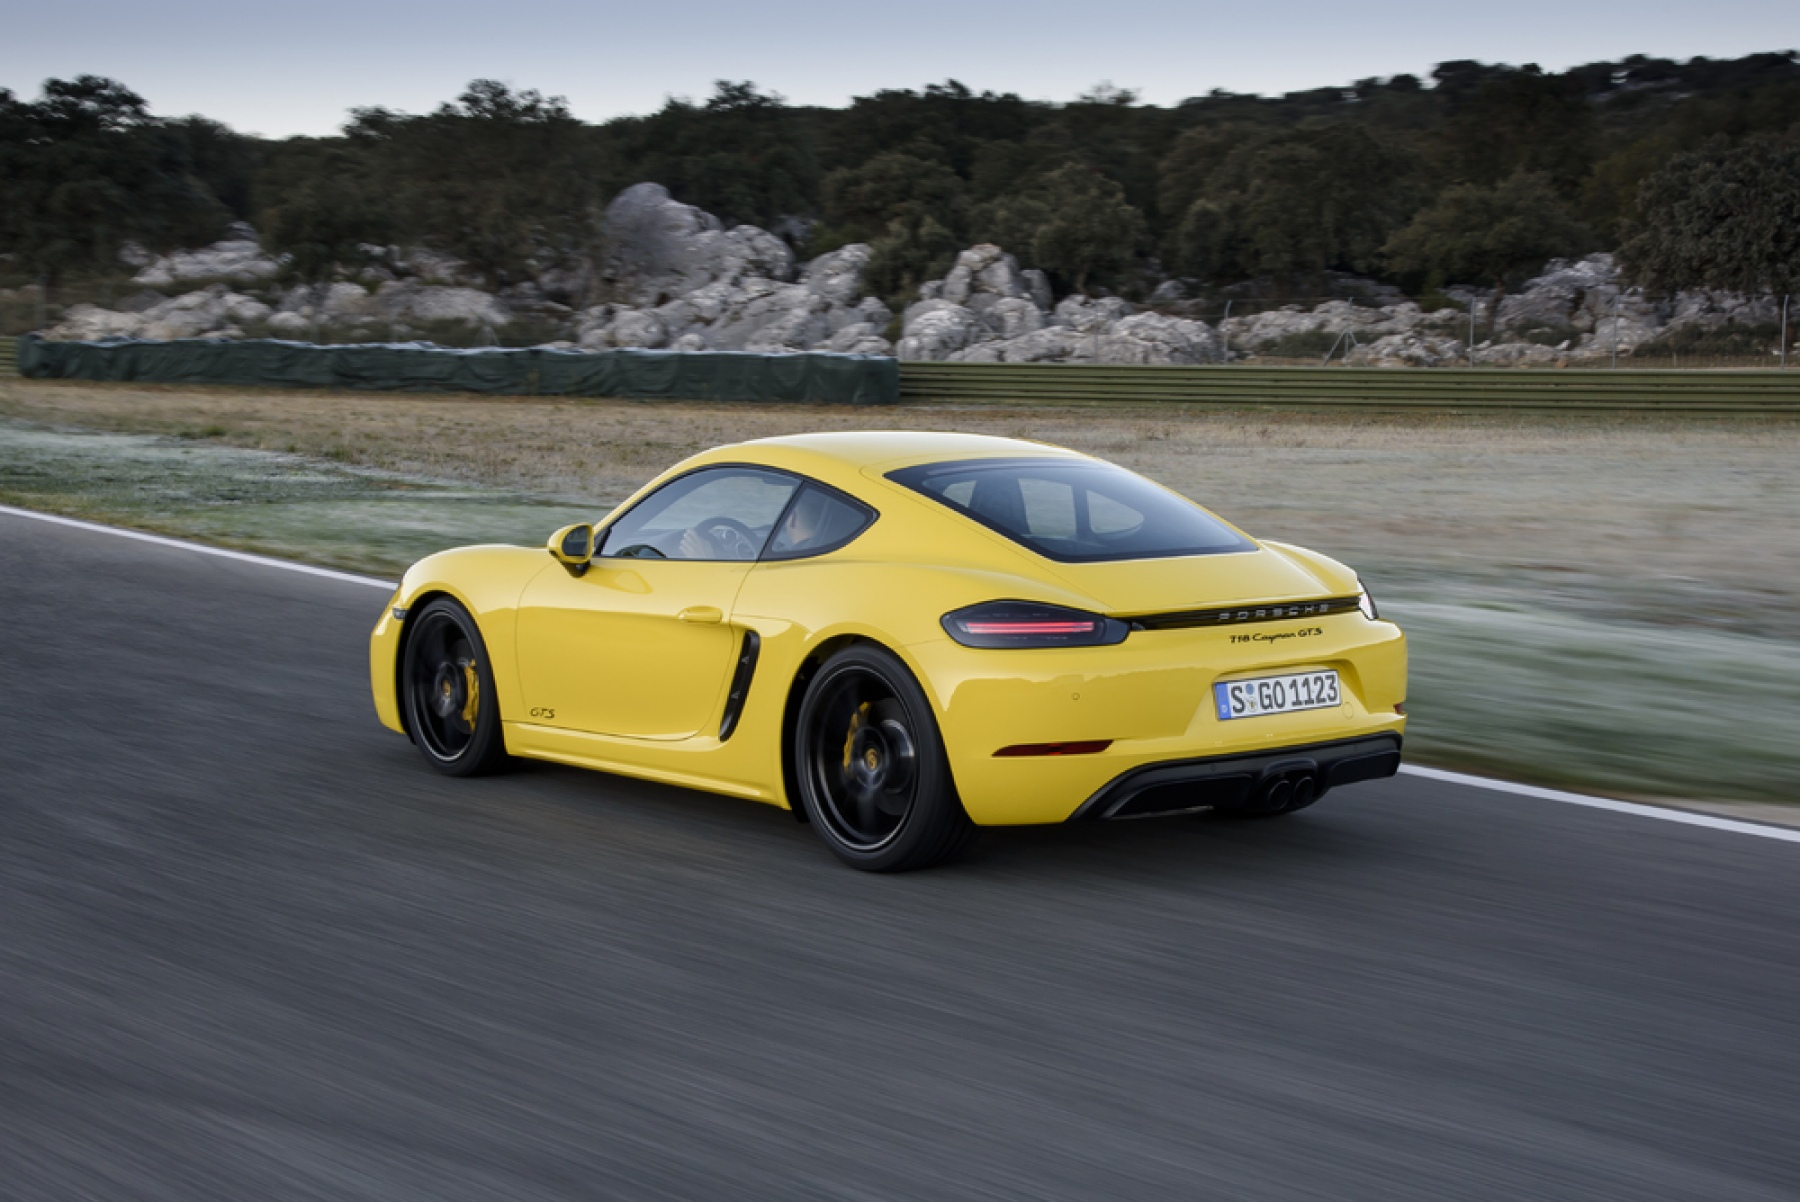 718 cayman gts racing yellow the new 718 boxster gts and 718 cayman gts. Black Bedroom Furniture Sets. Home Design Ideas